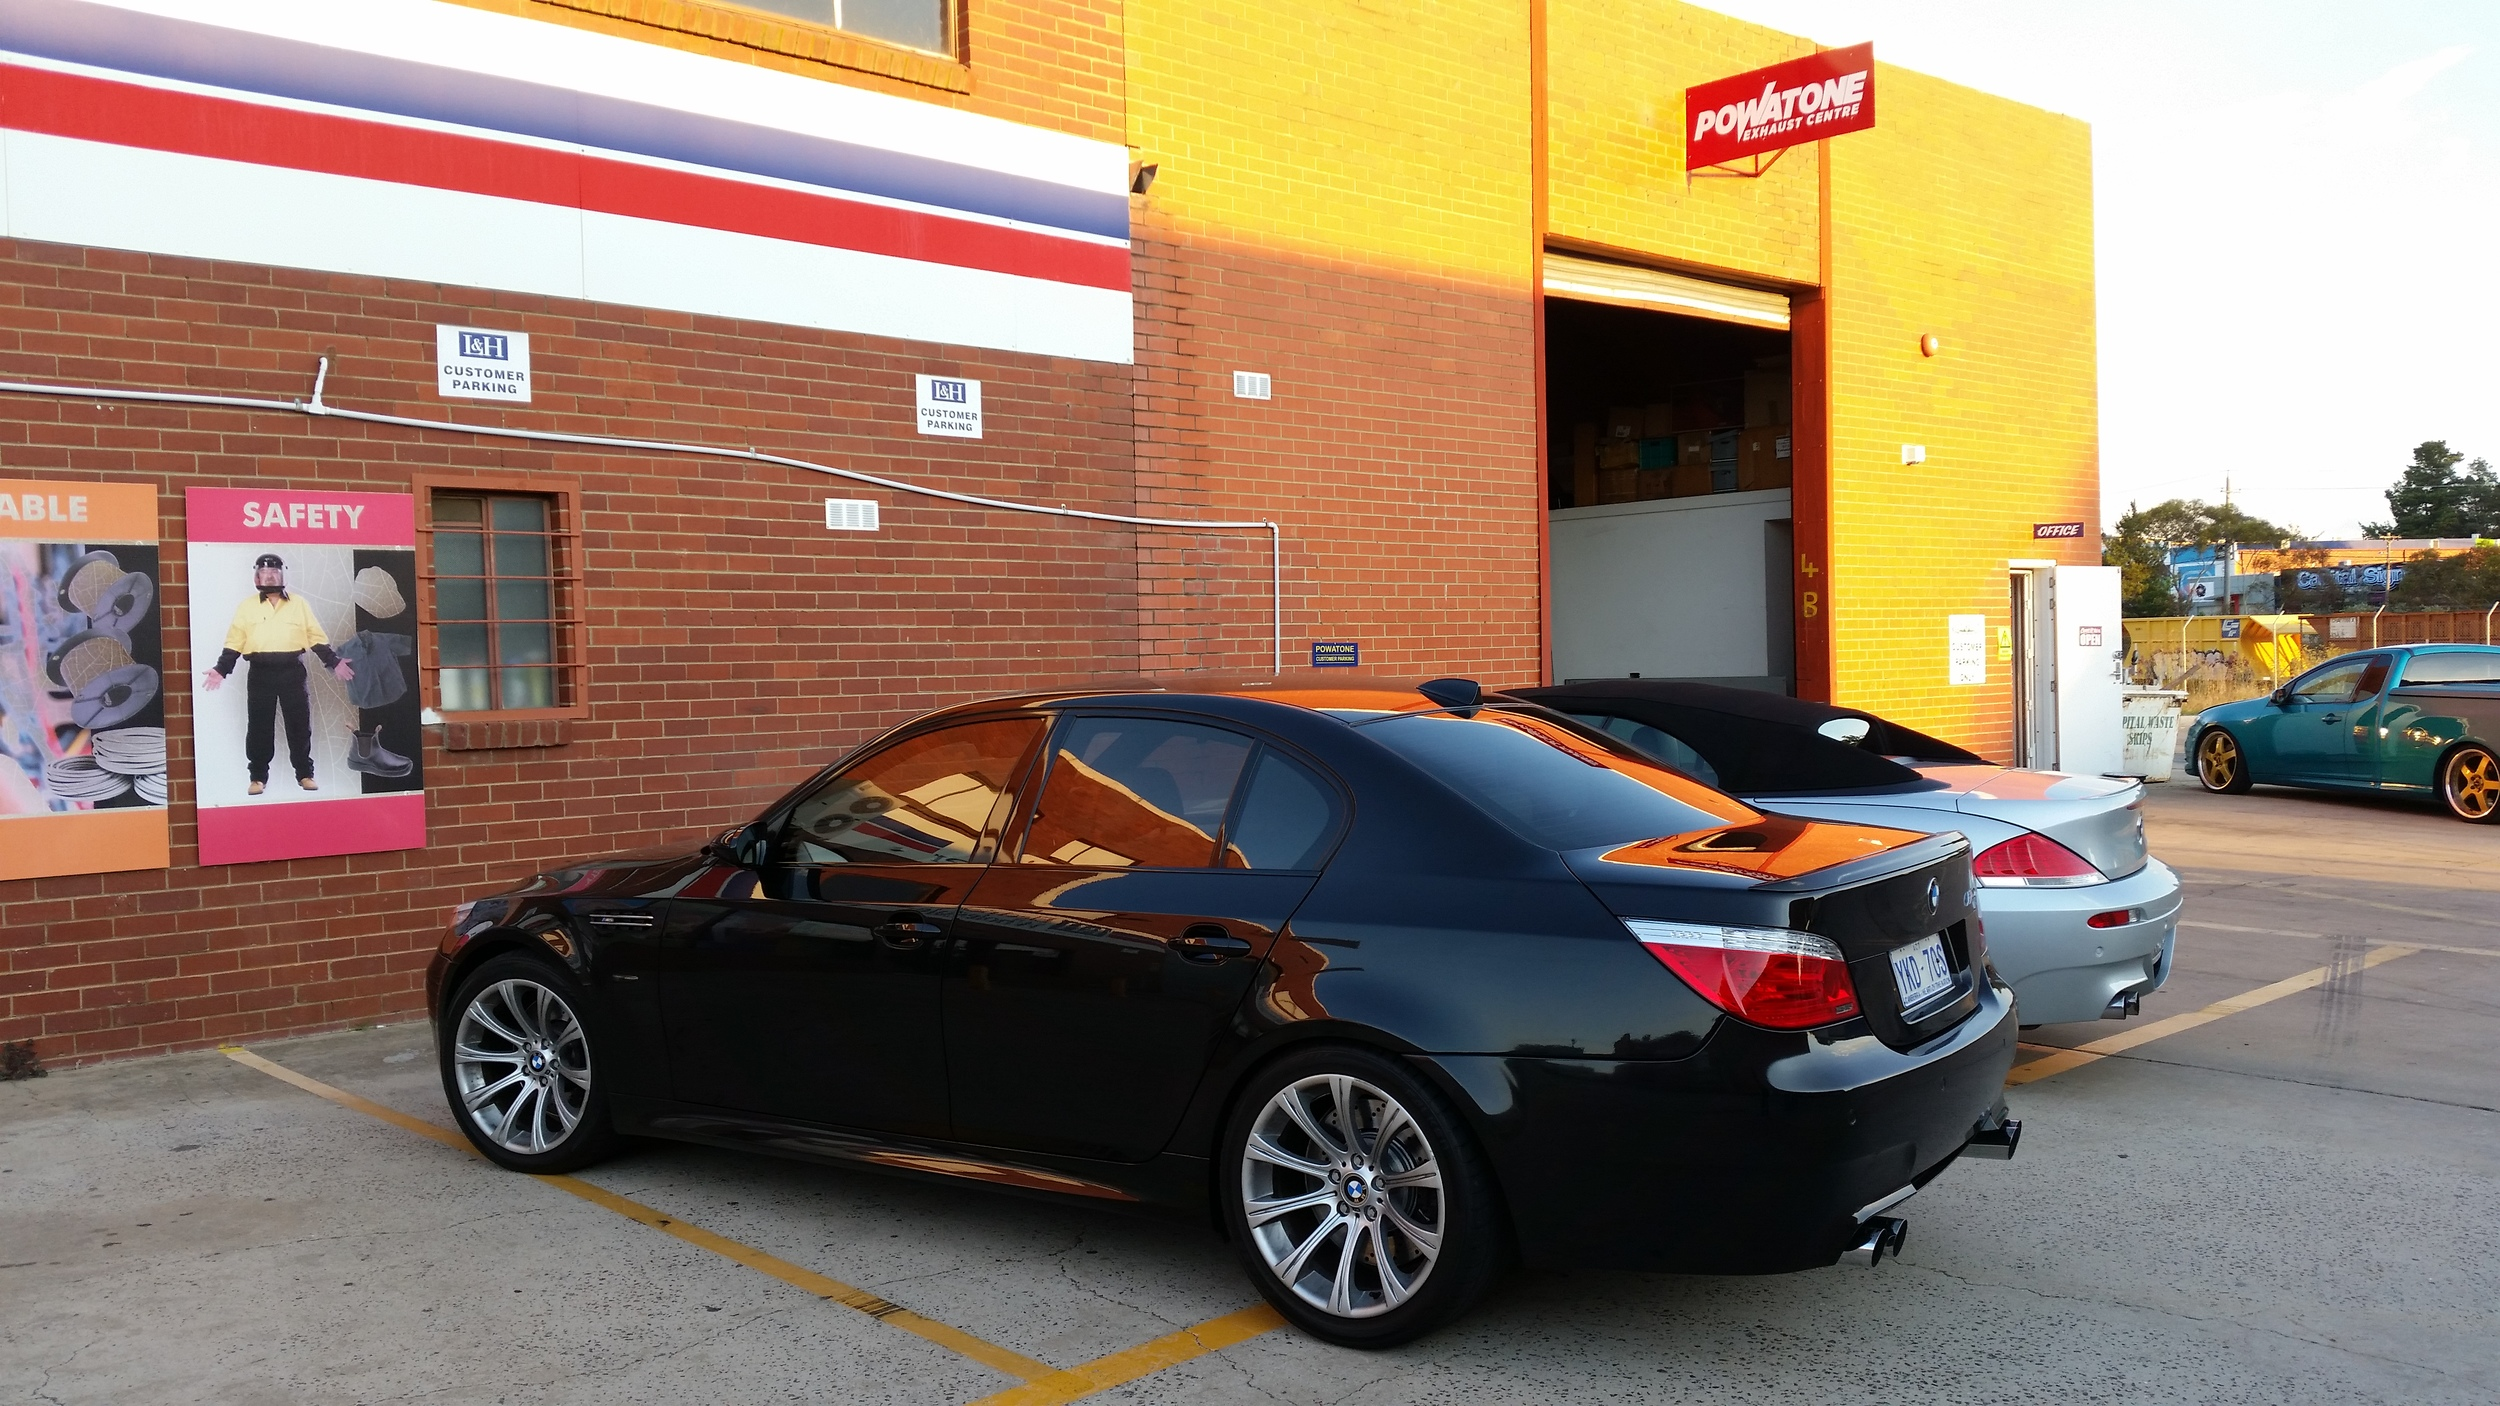 Powatone exhaust centre, custom exhaust canberra, BMW M5, M6 V10.jpg